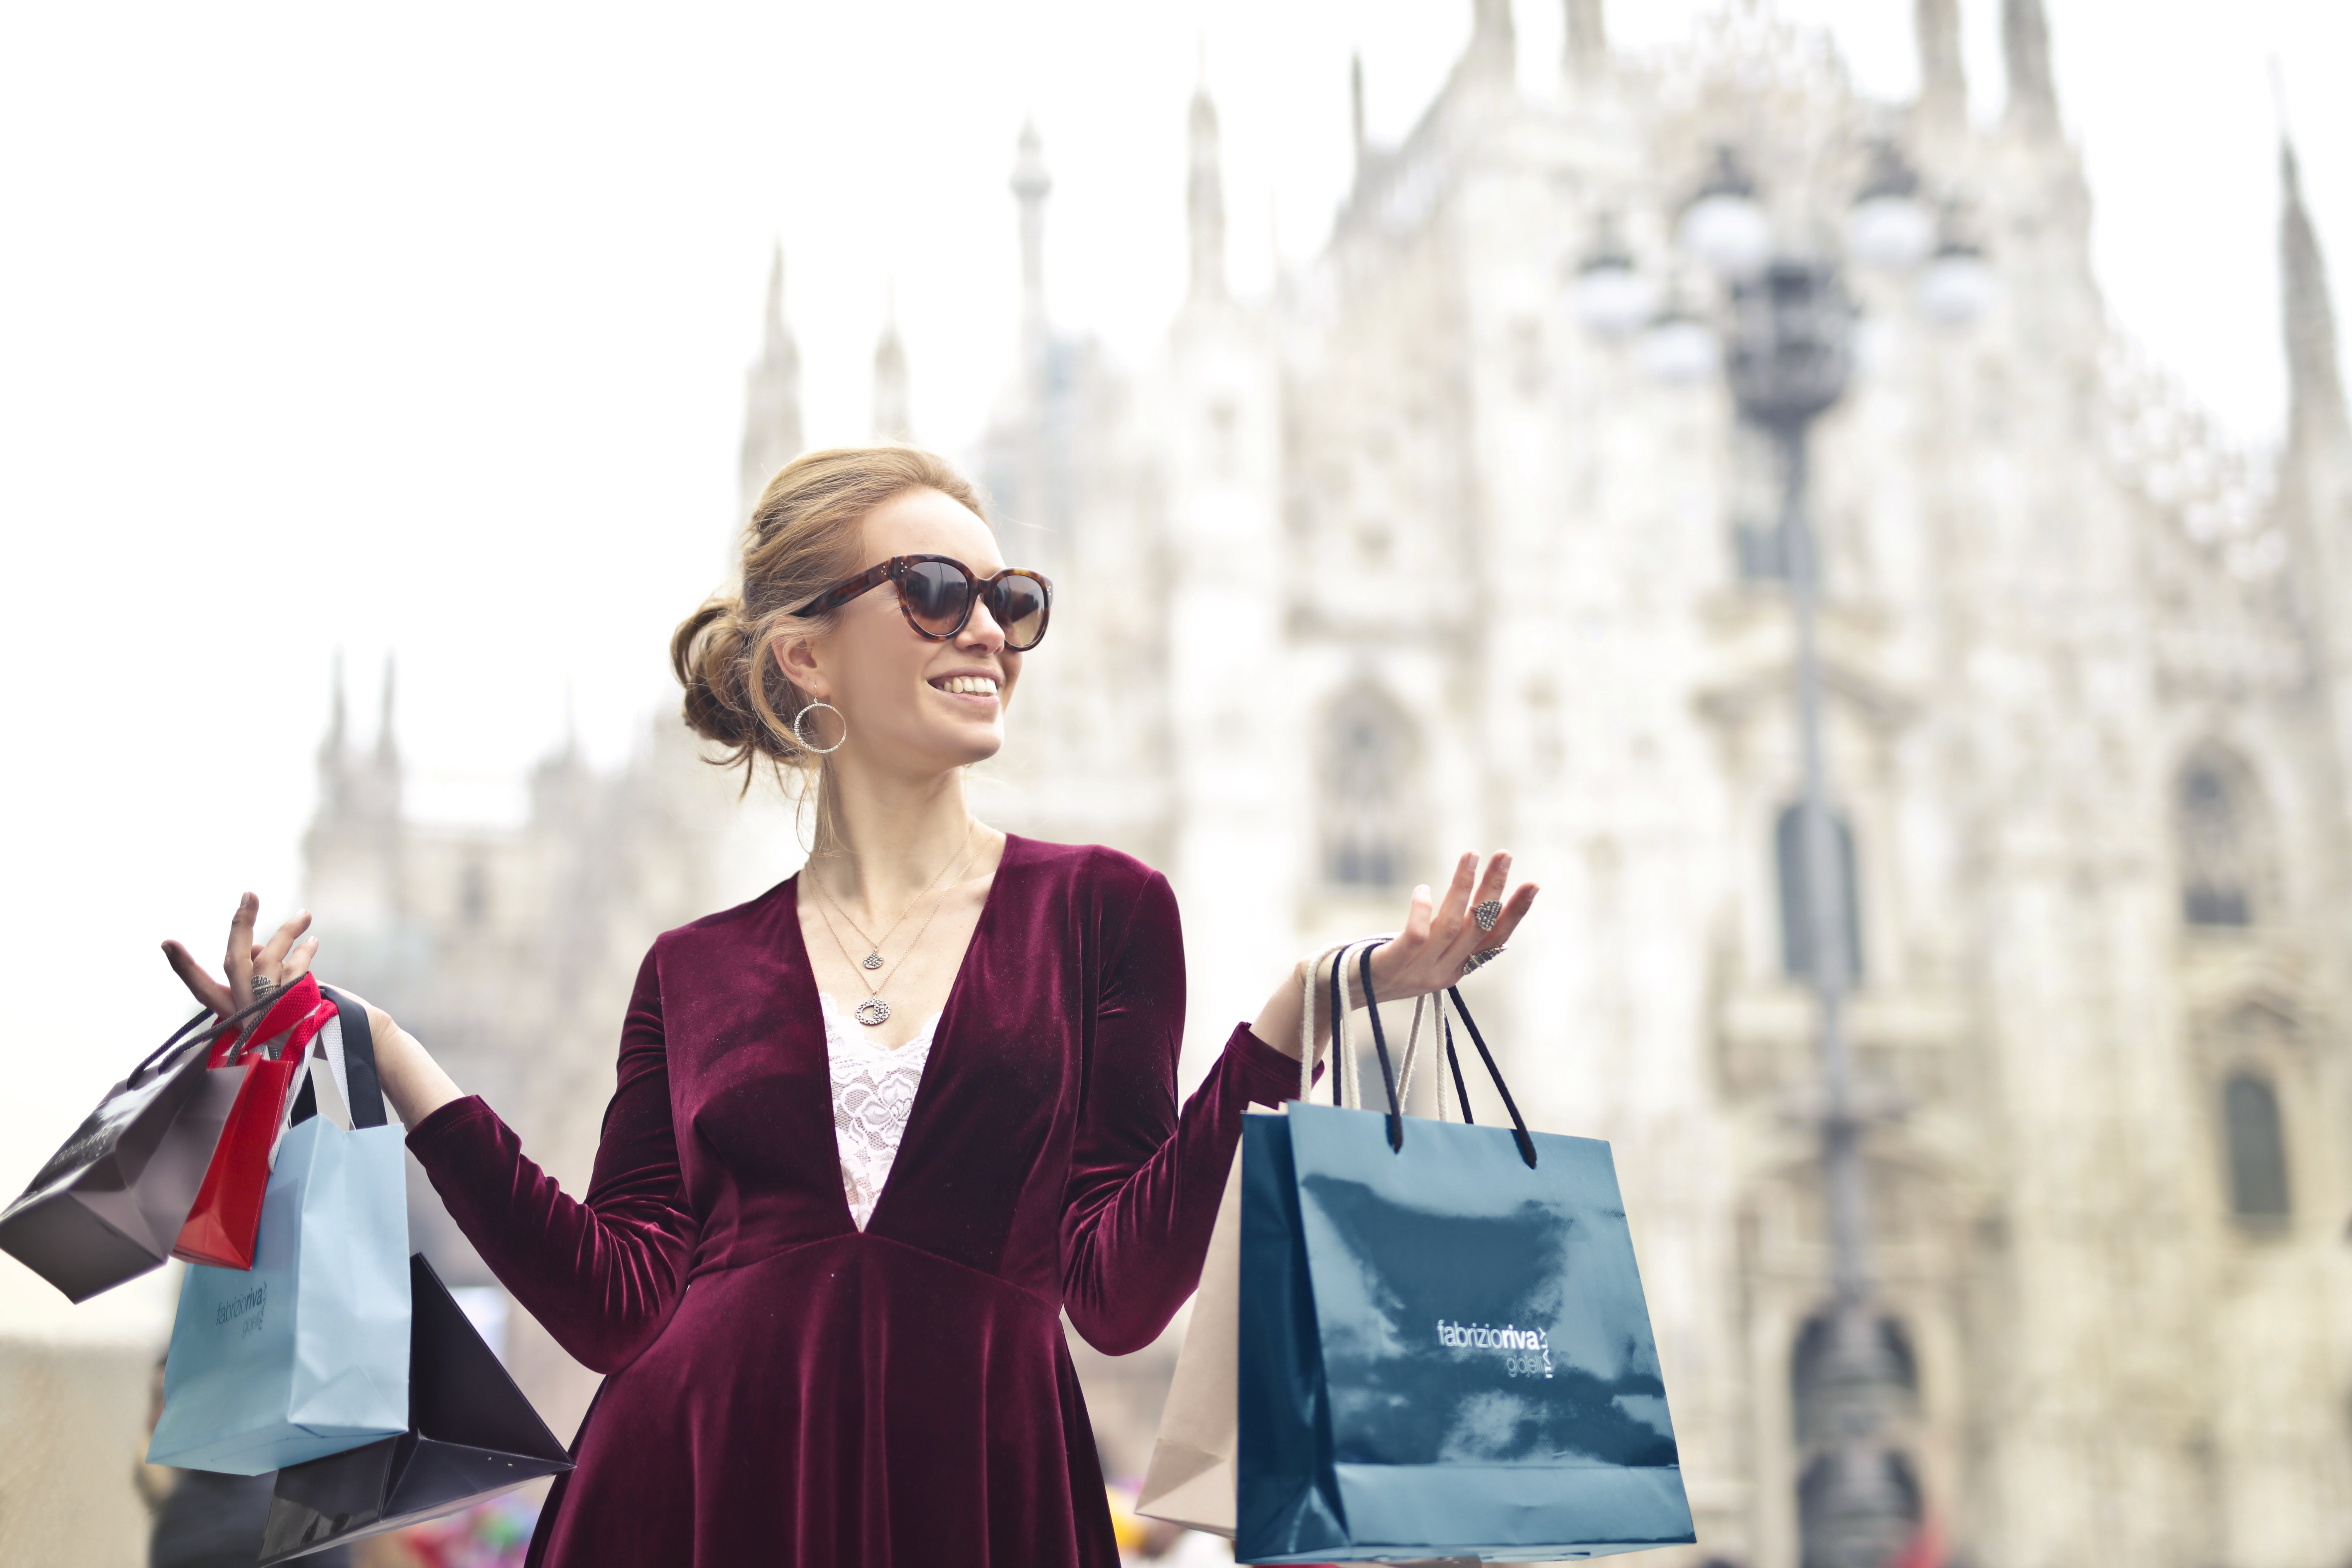 Woman Wearing Maroon Velvet Plunge-neck Long-sleeved Dress While Carrying Several Paper Bags Photography, Pretty, Purchase, Rich, Person, HQ Photo